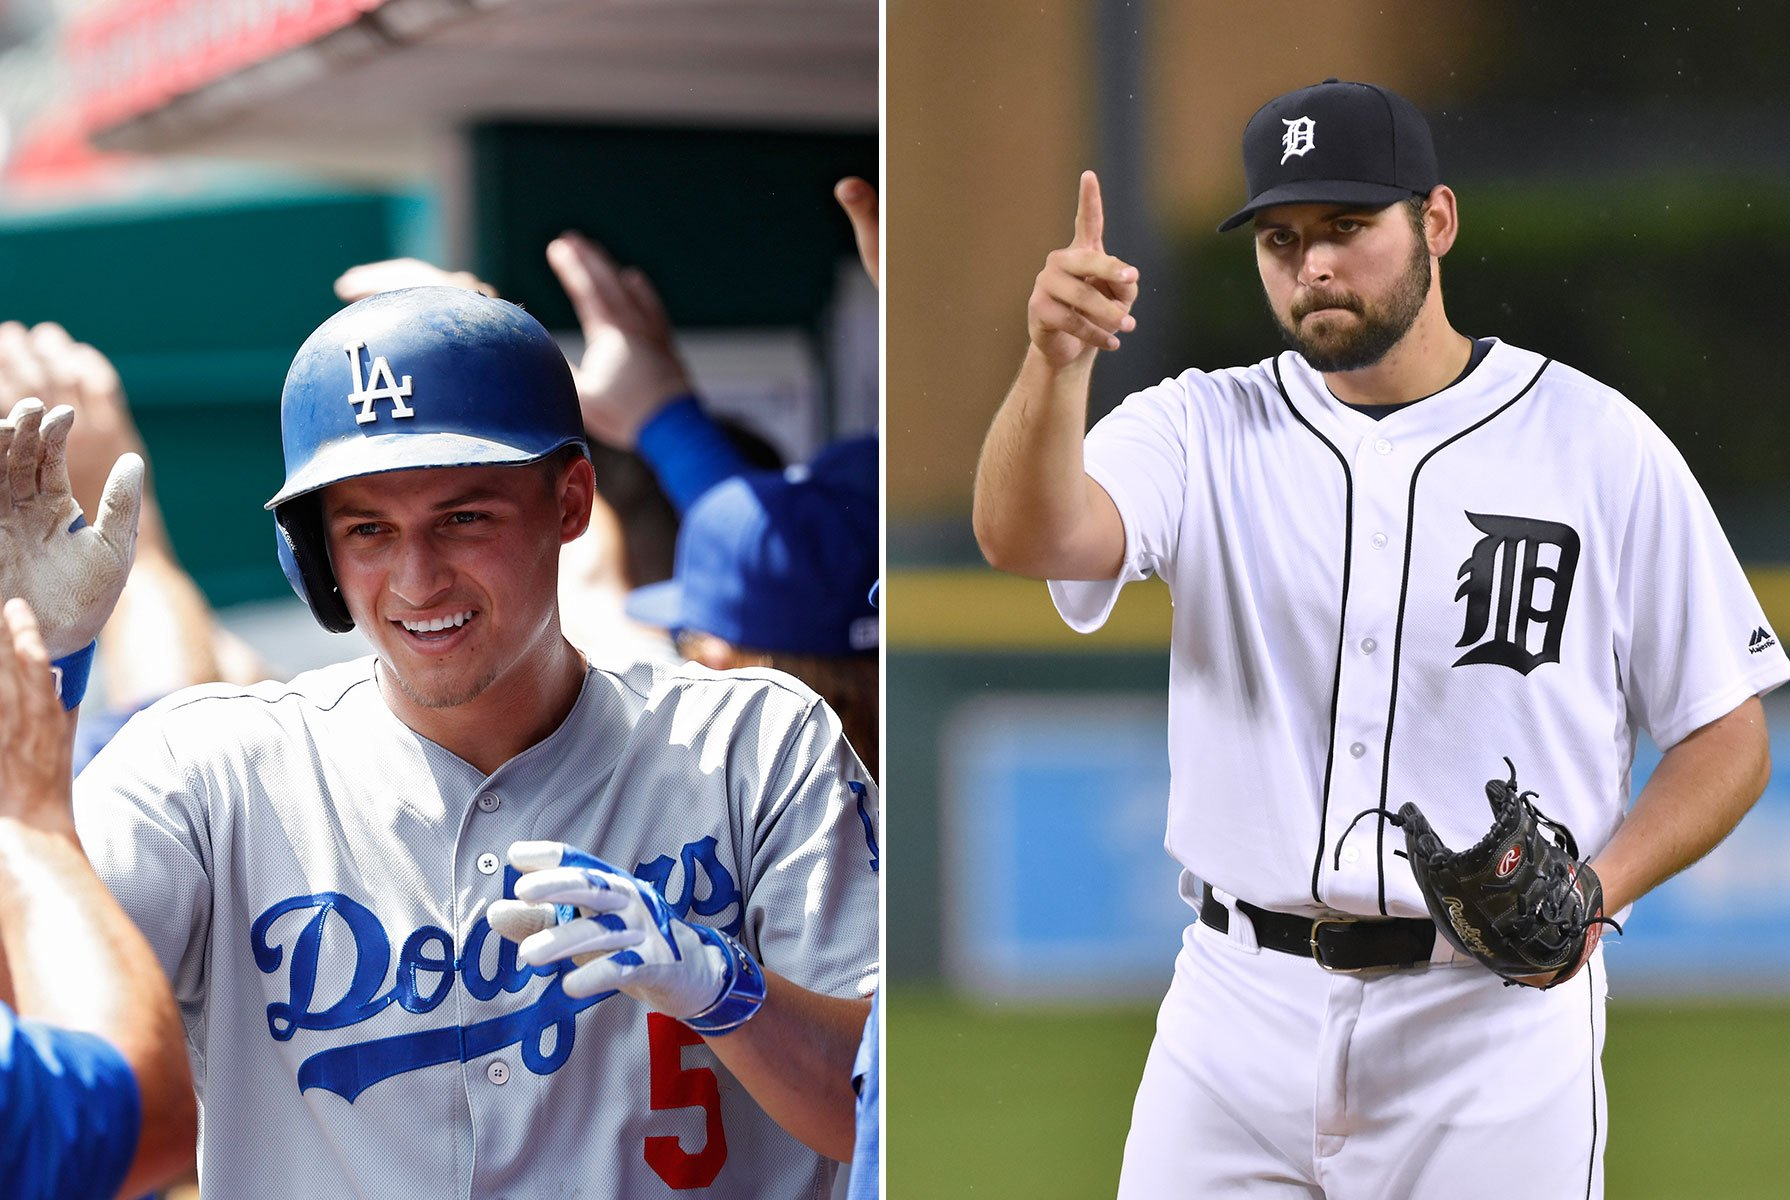 Your 2016 Rookie of the Year winners: Corey Seager and Michael Fulmer (Getty Images)